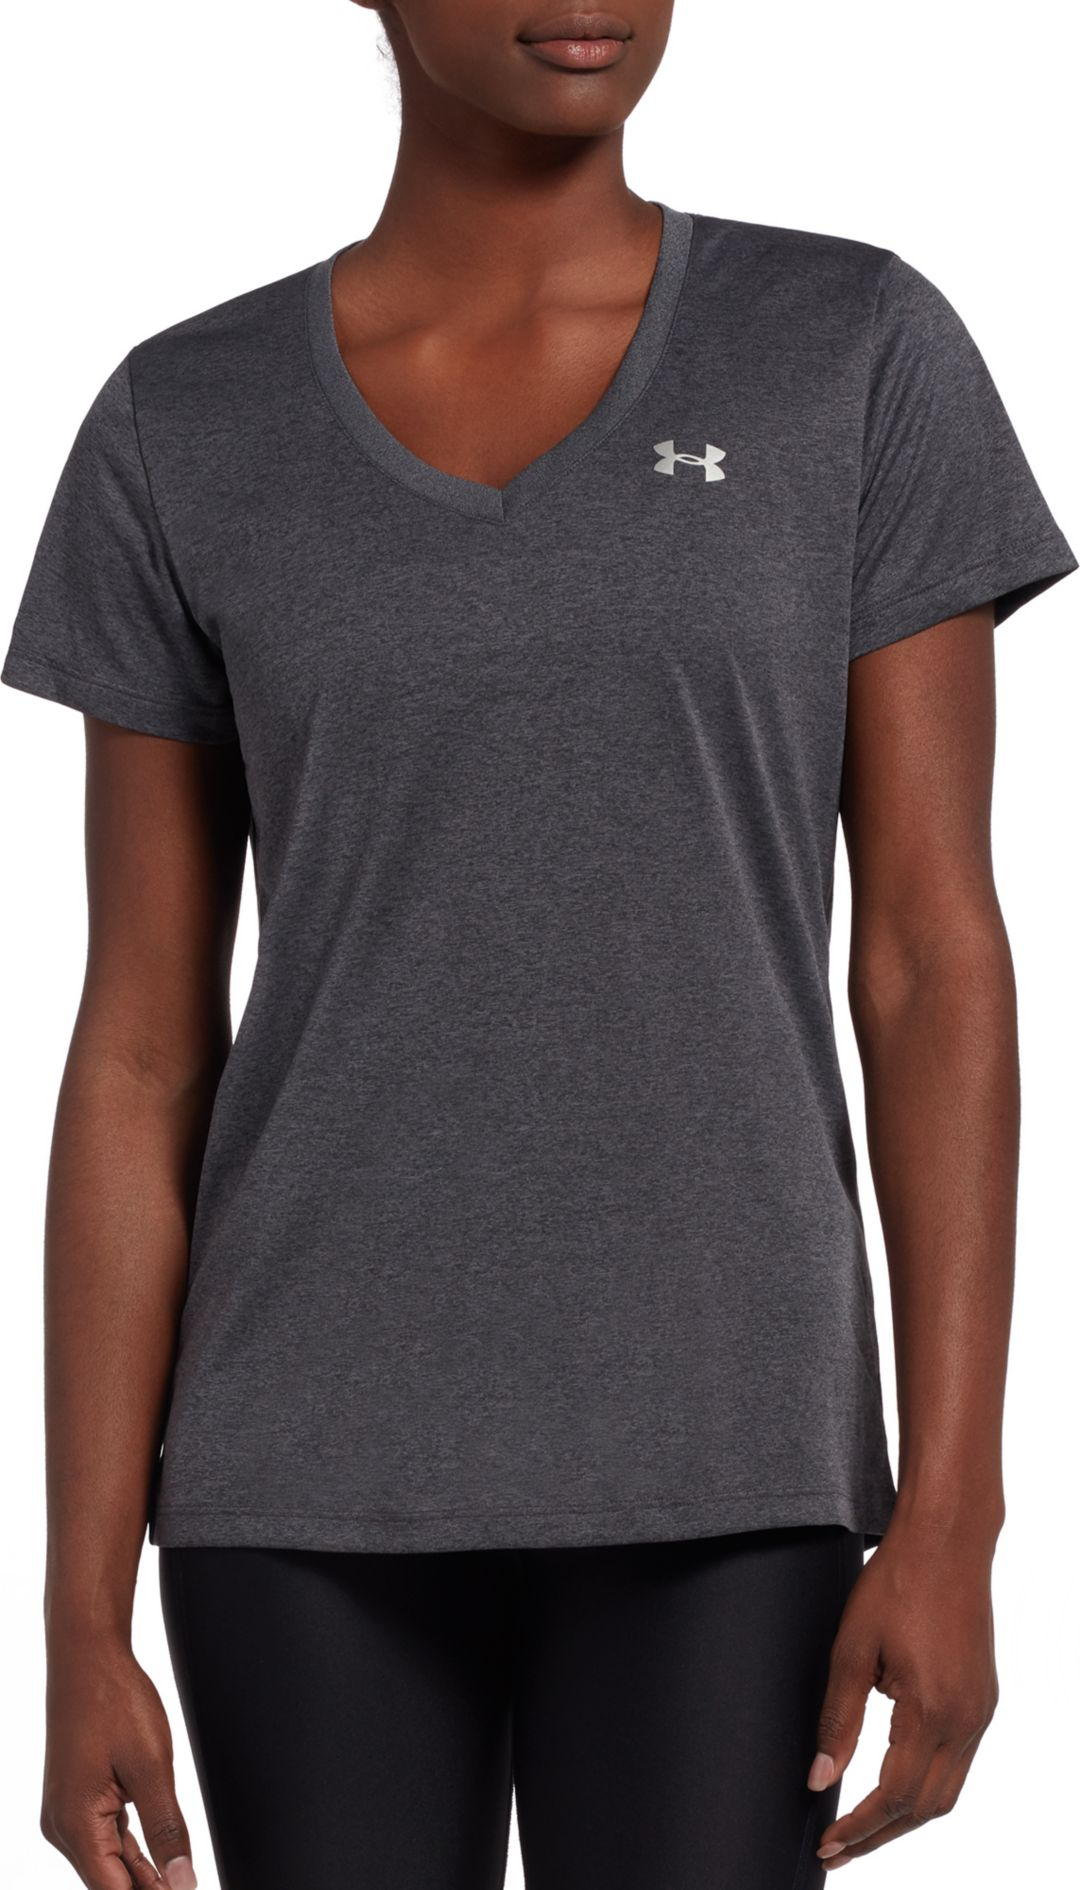 7eddf2b4 Under Armour Women's Tech V-Neck Short Sleeve Shirt